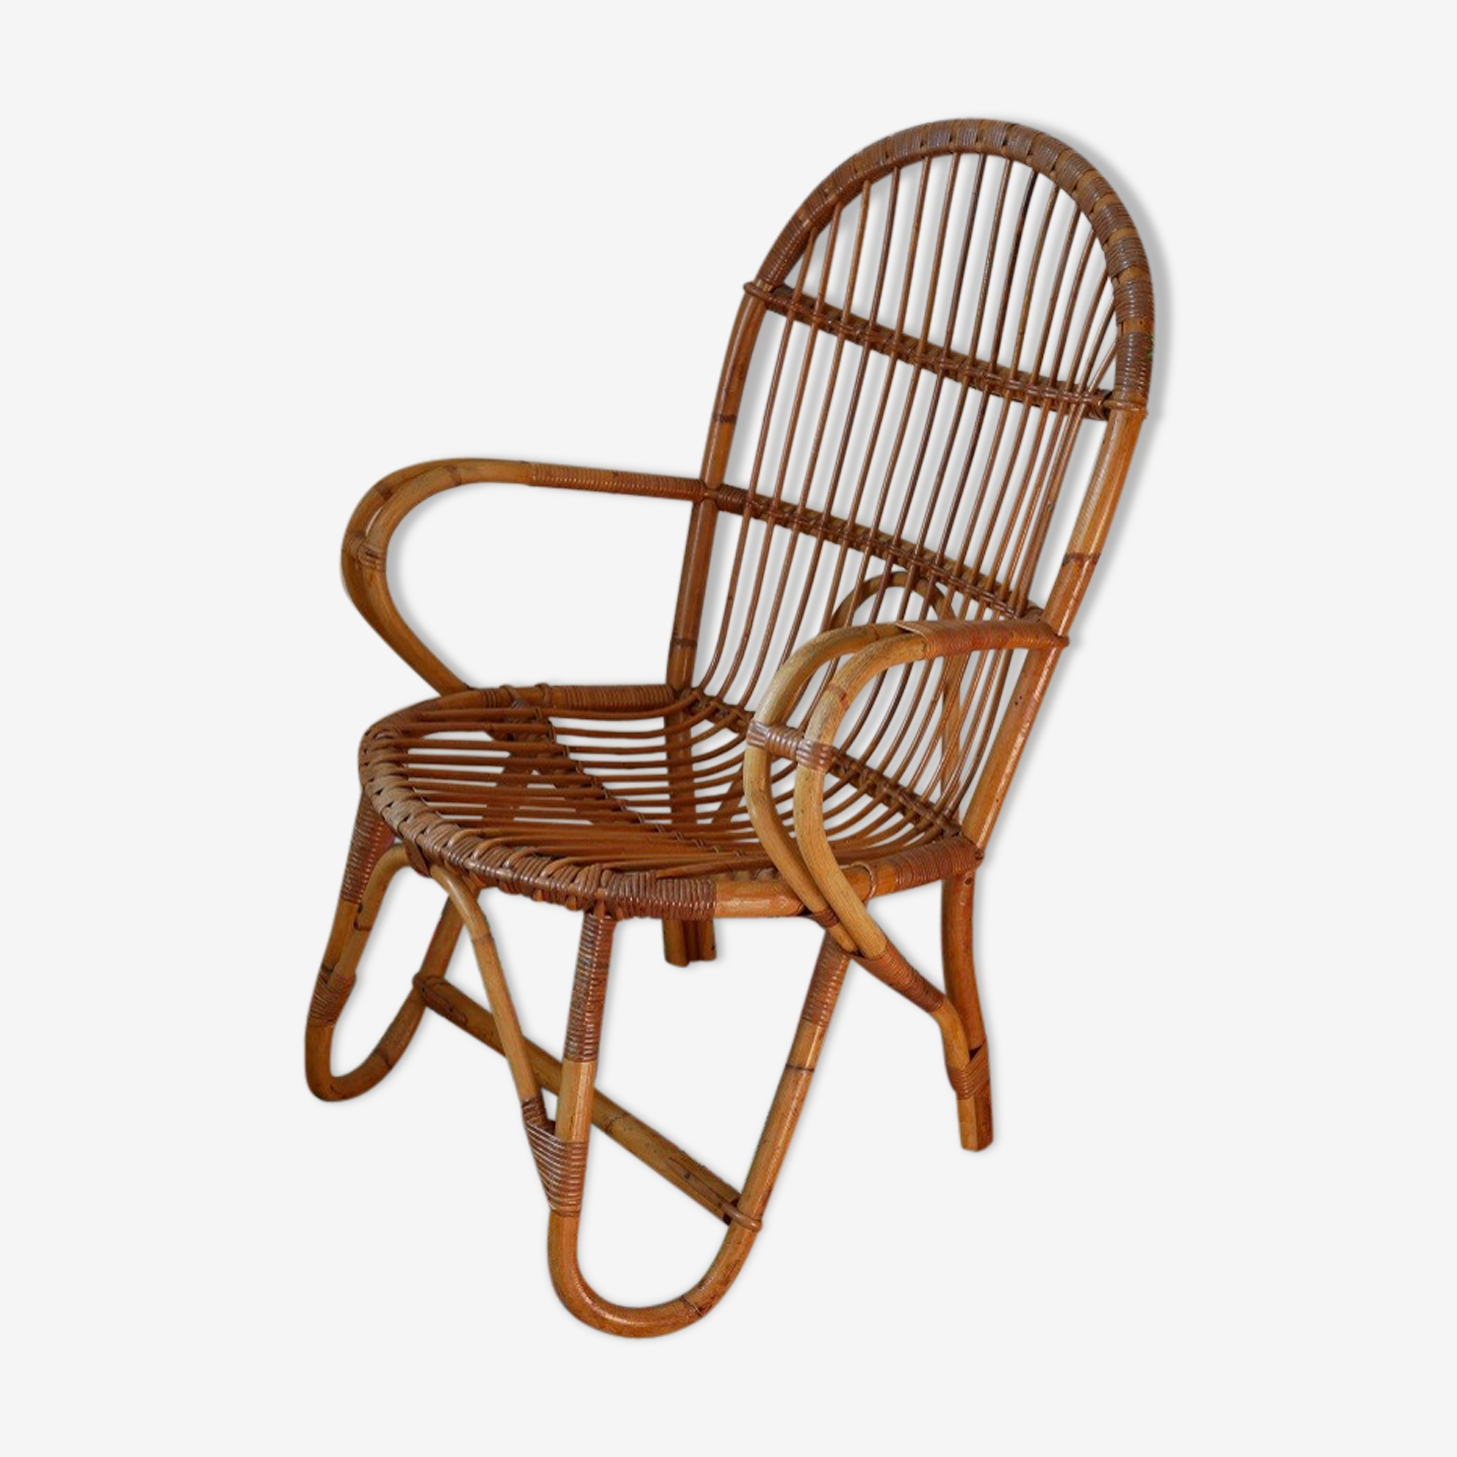 Armchair in rattan of the 1960s